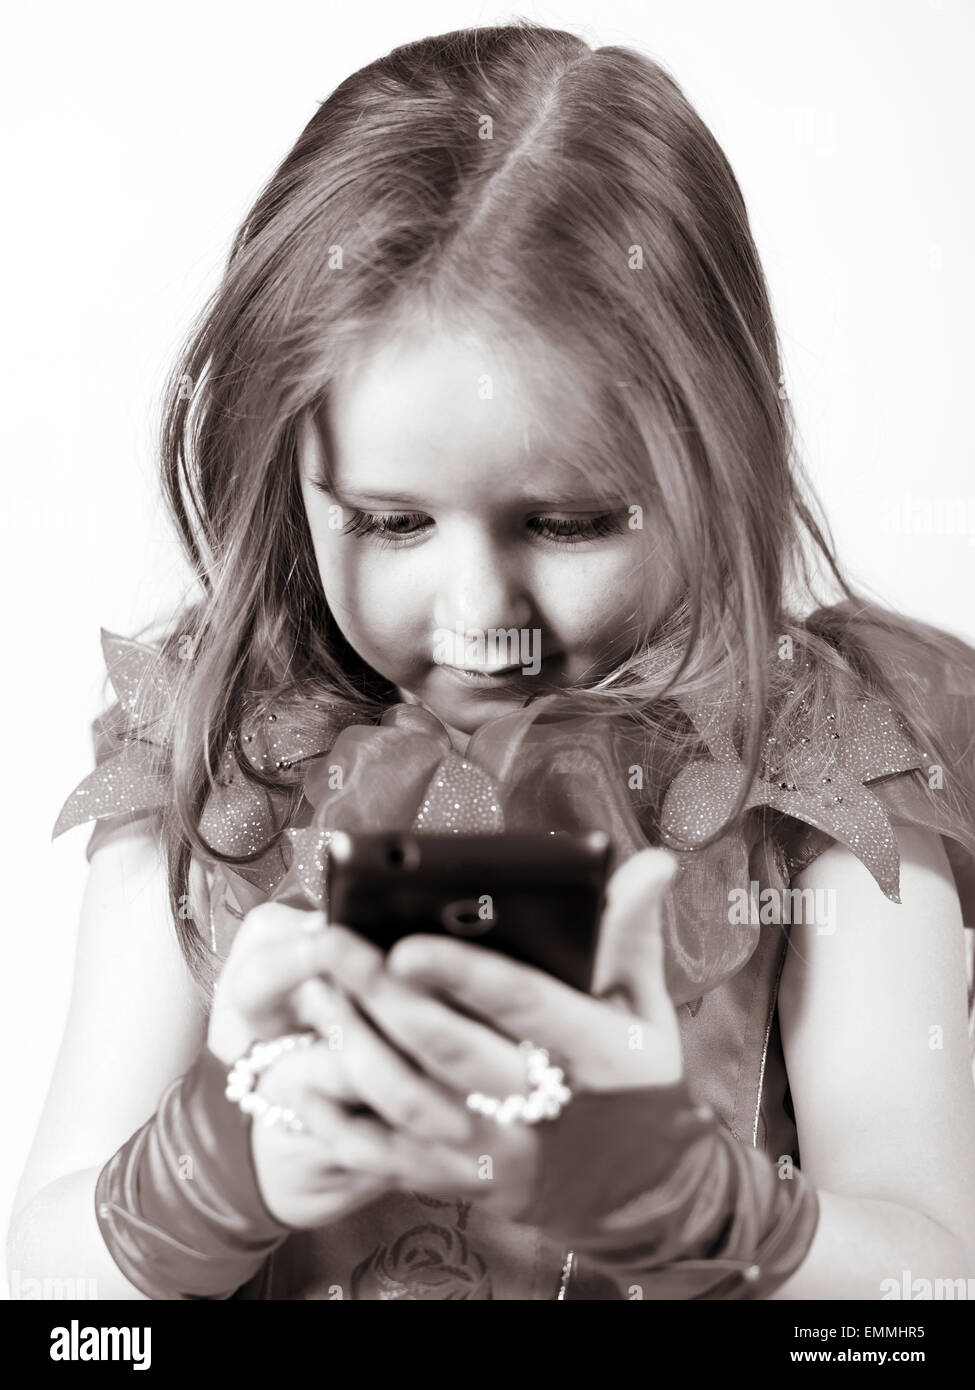 Cute little girl dressed in ball gown playing with smartphone and smiling, isolated on white background Stock Photo